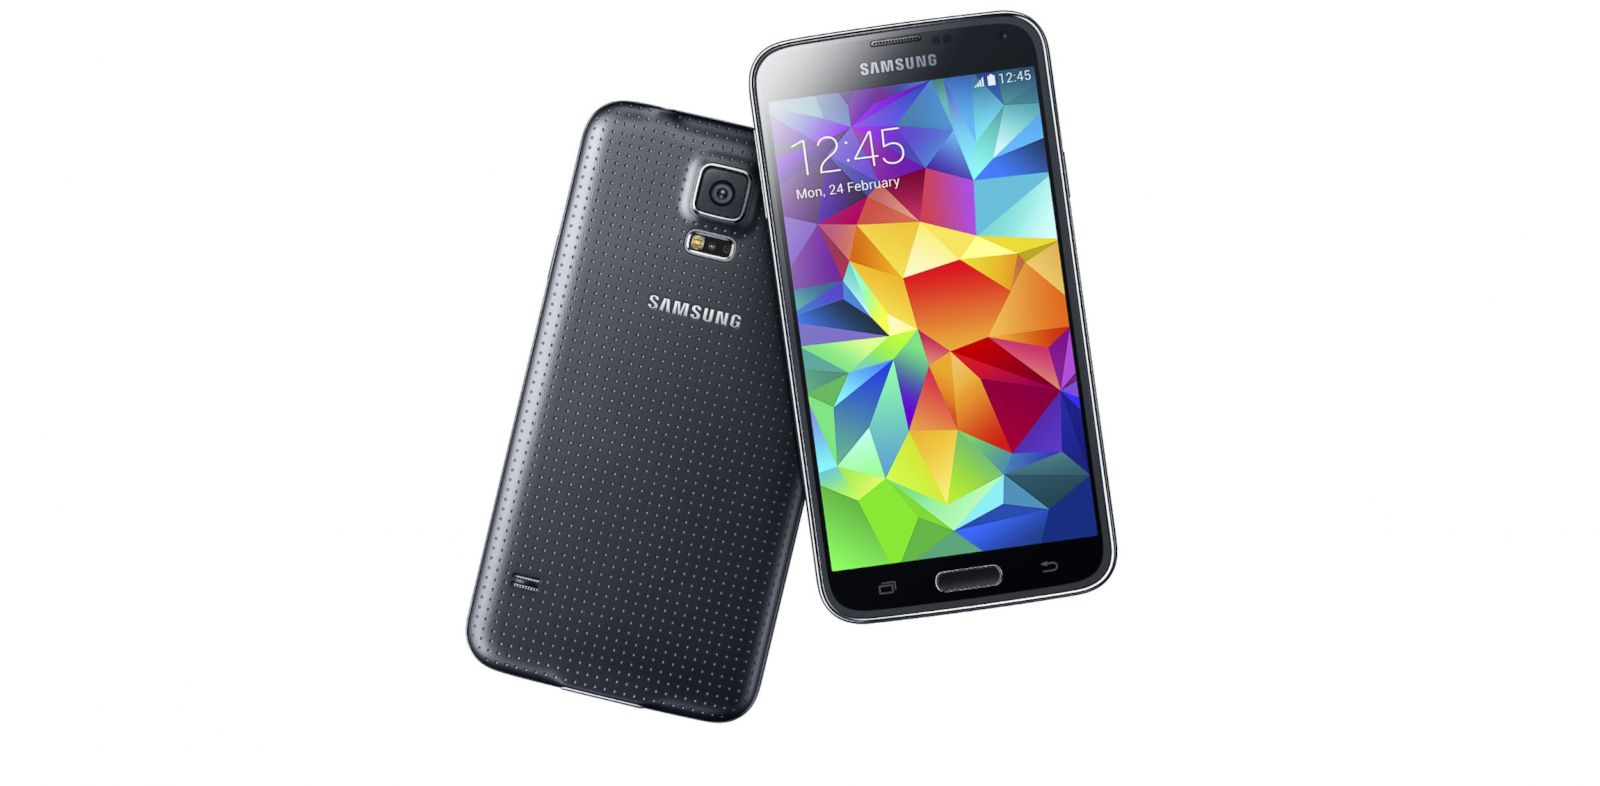 PHOTO: The Galaxy S5 will be available on Apr. 11, 2014.